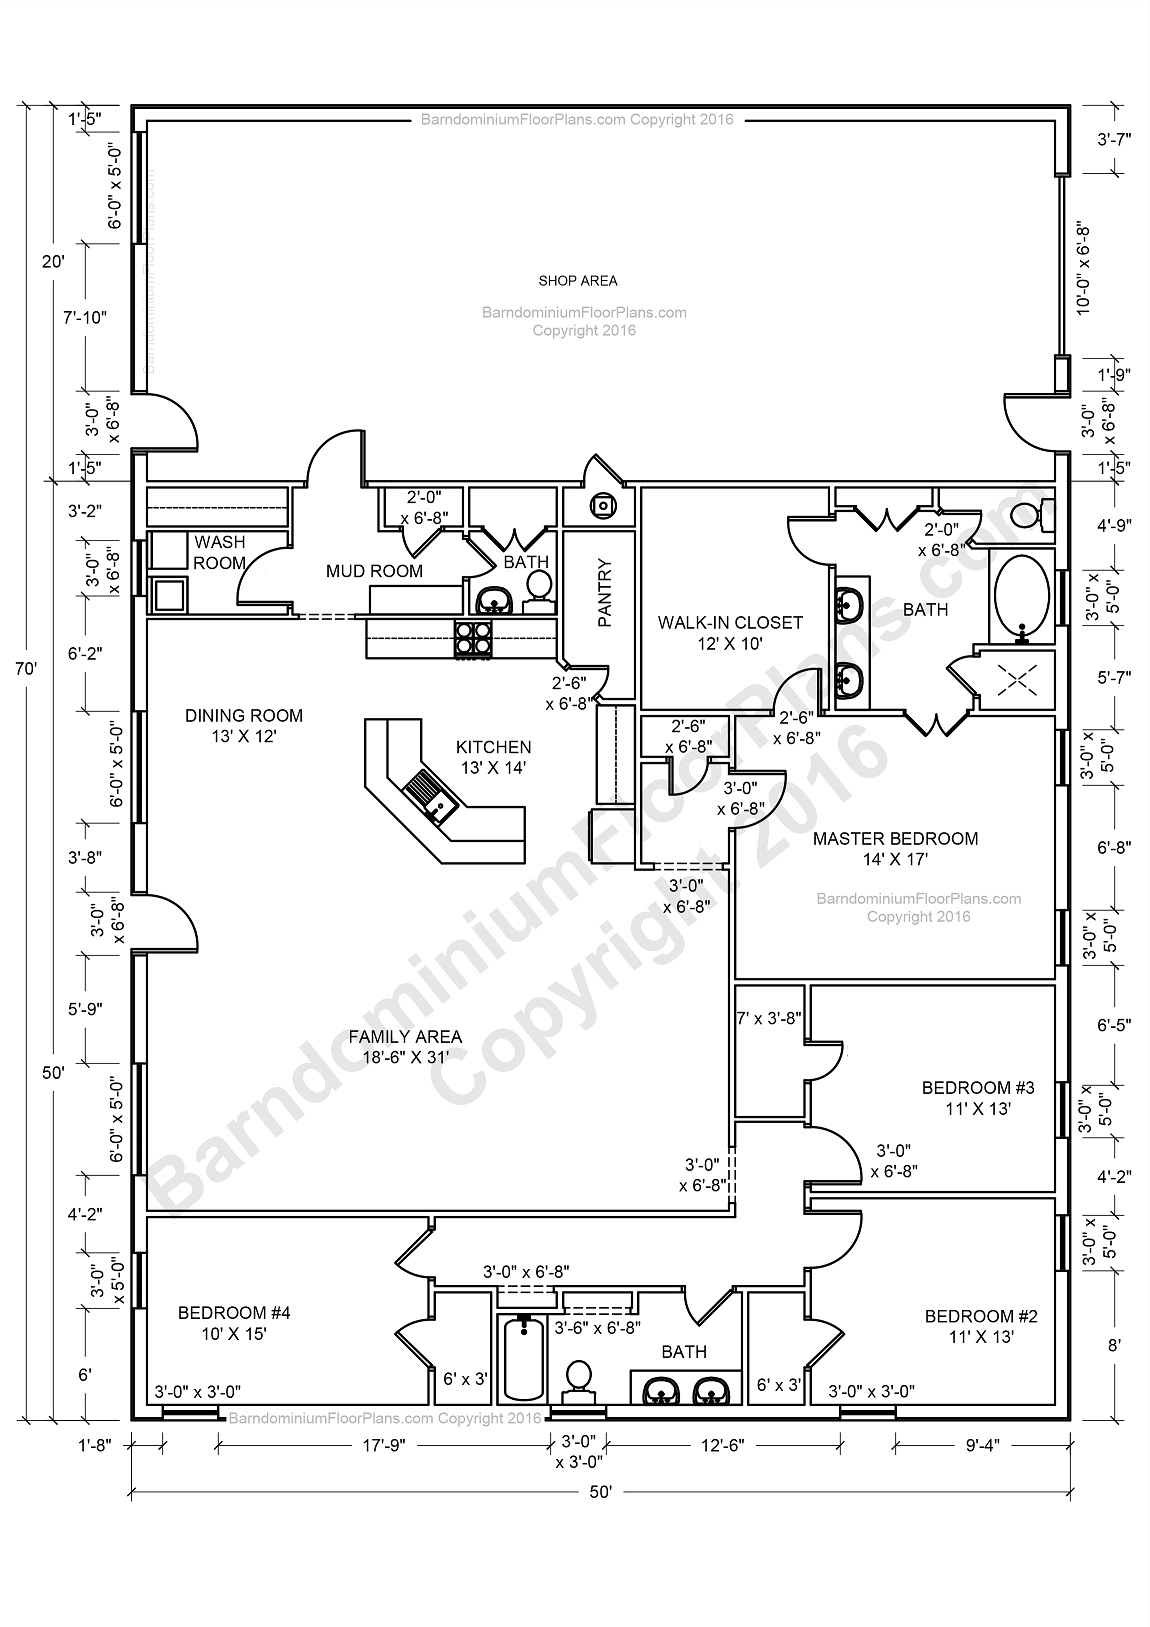 Barndominium floor plans barndominium floor plans 1 800 for Shop house combination plans